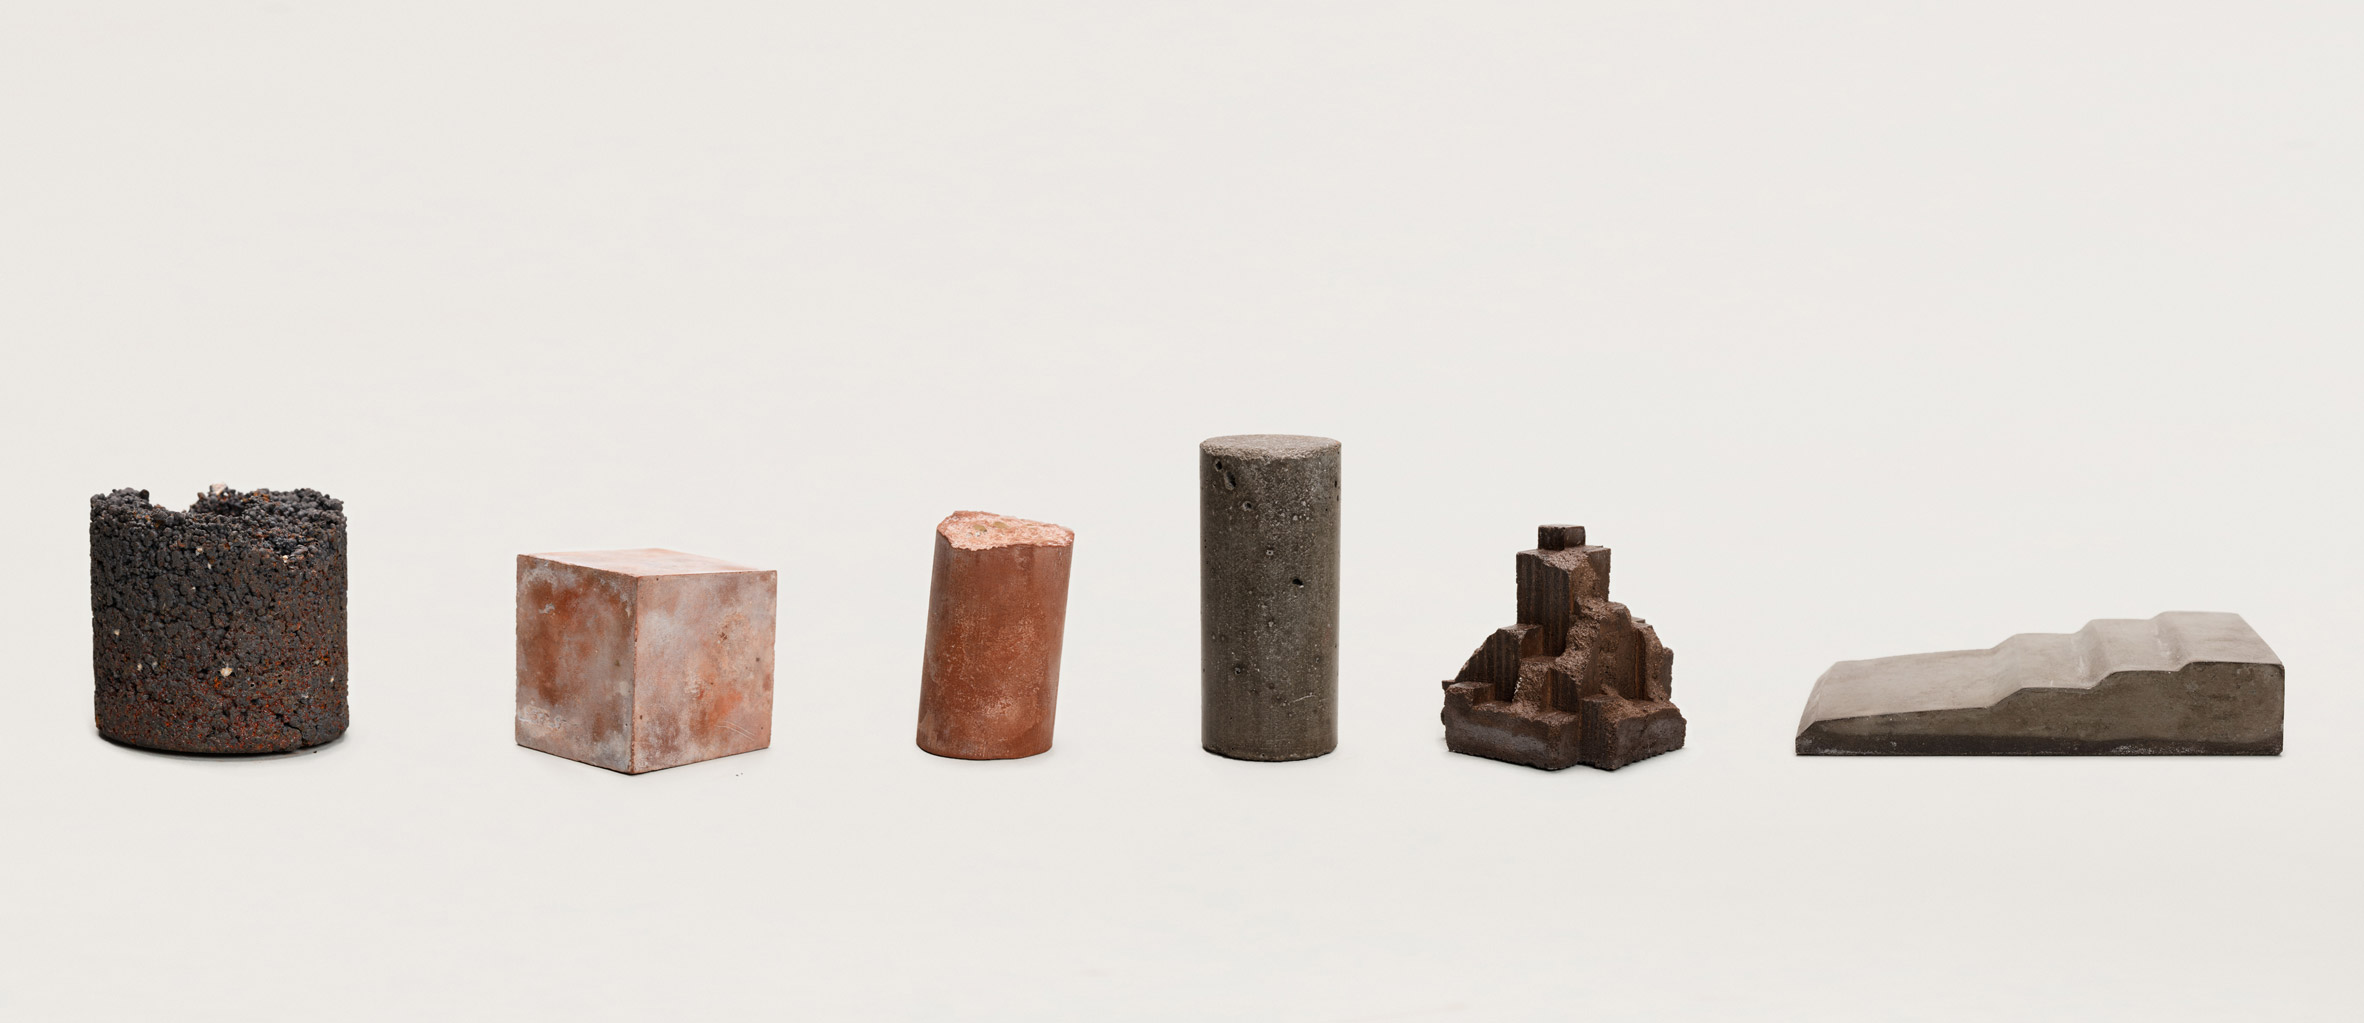 rca-red-mud-objects-design_dezeen_2364_col_1